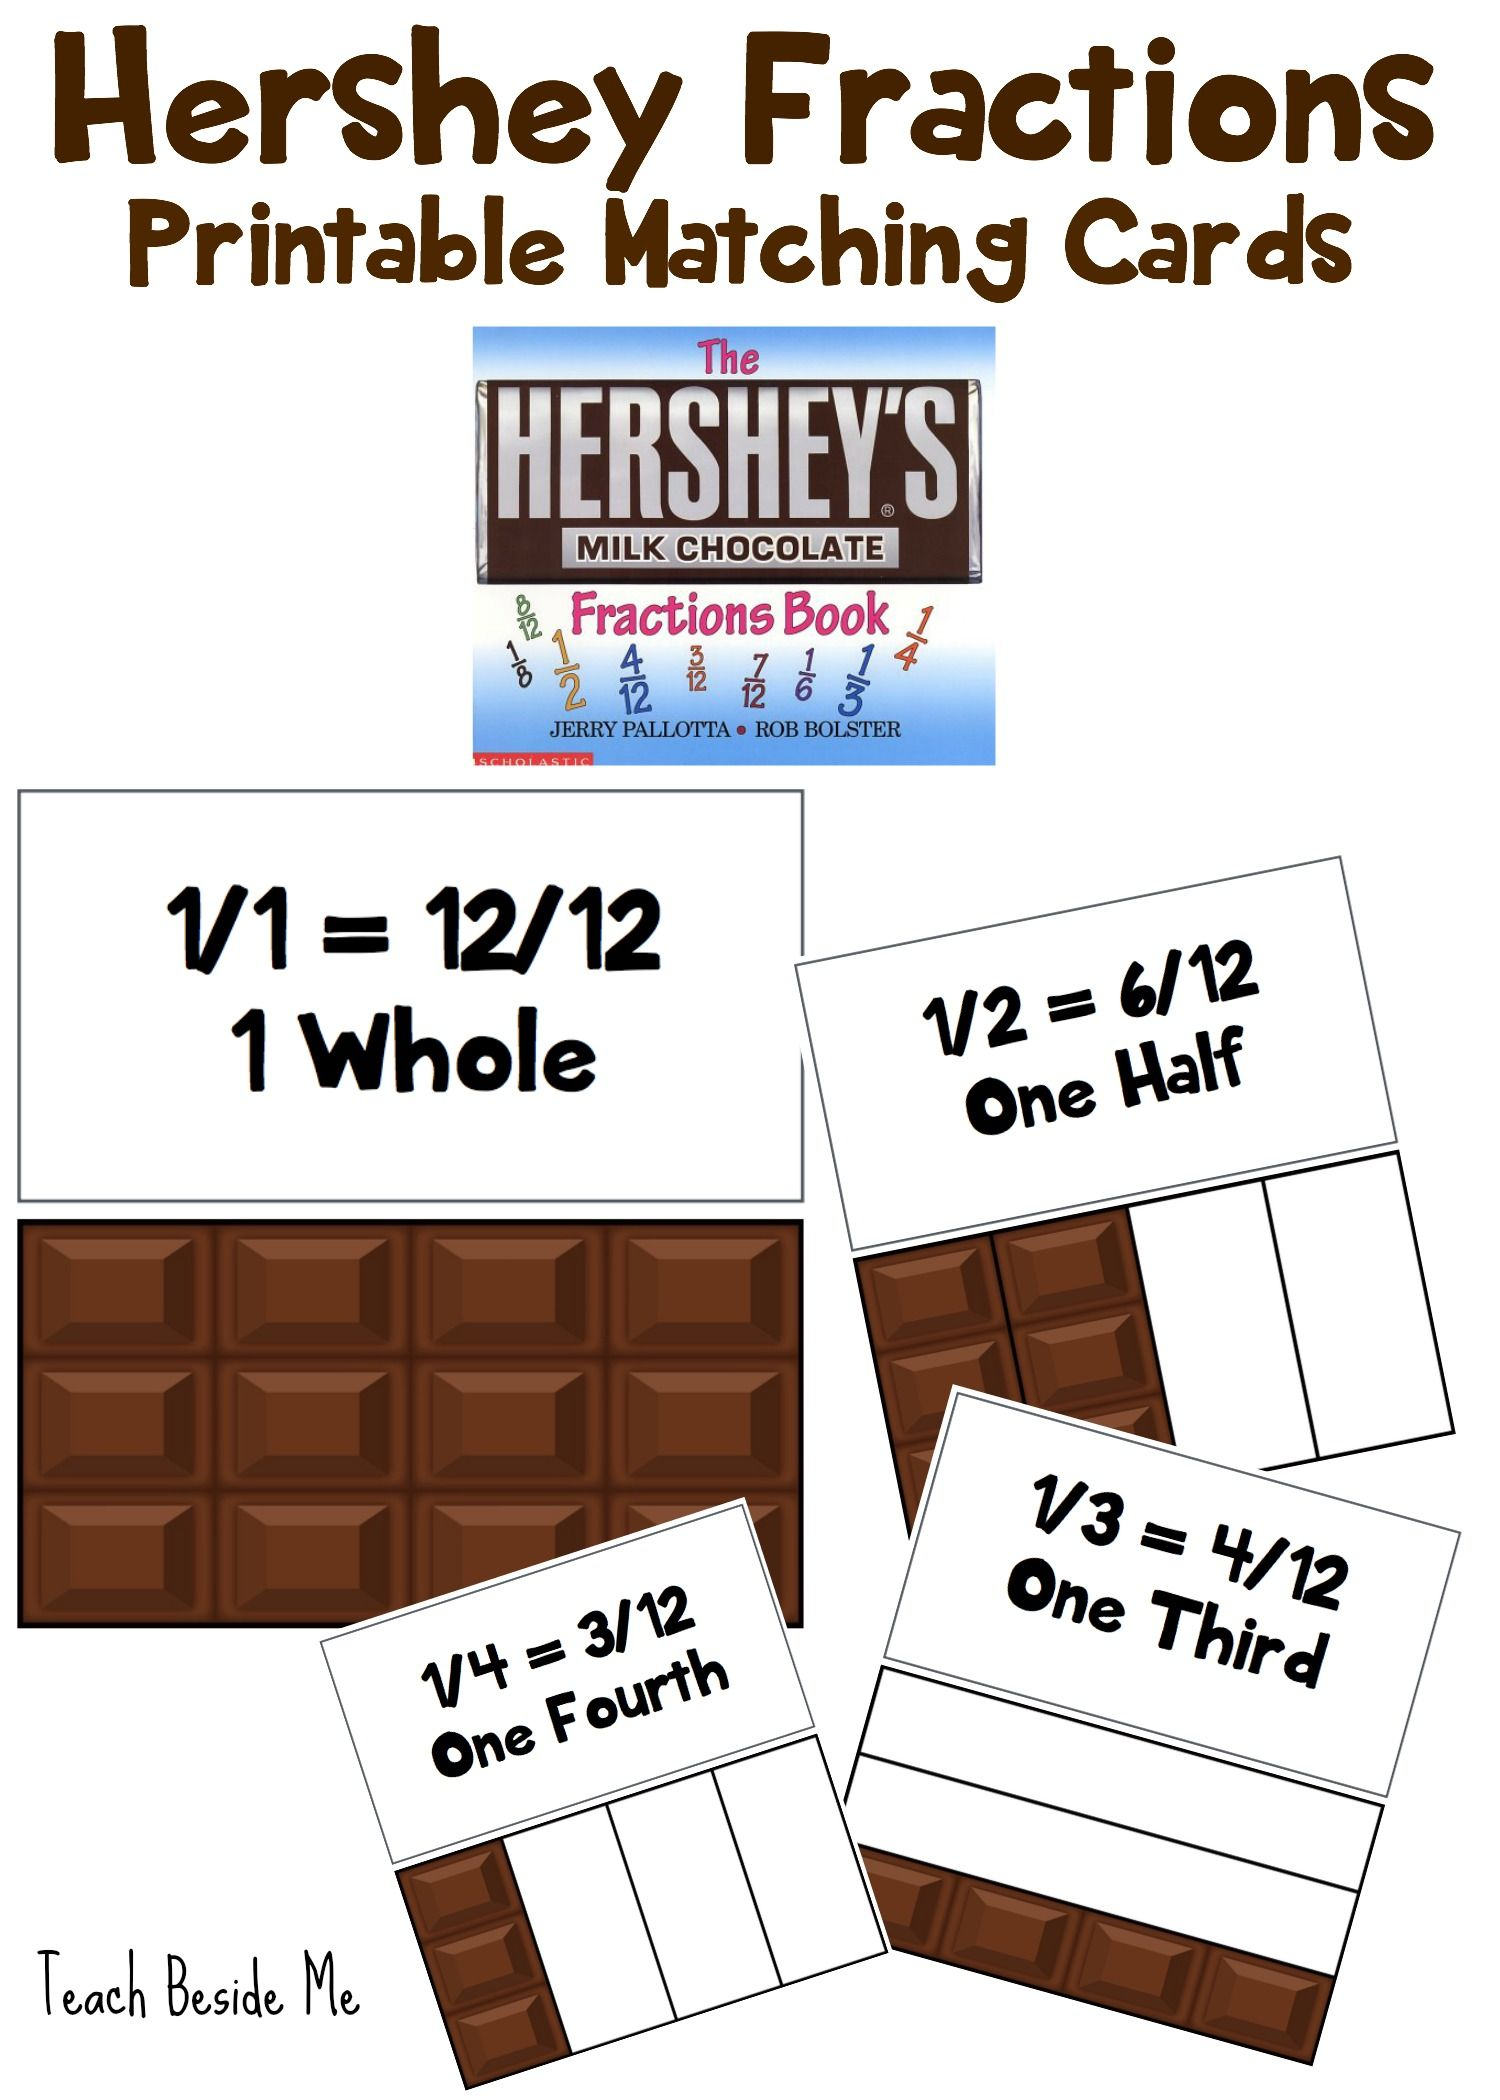 Hershey Fractions Printable Cards